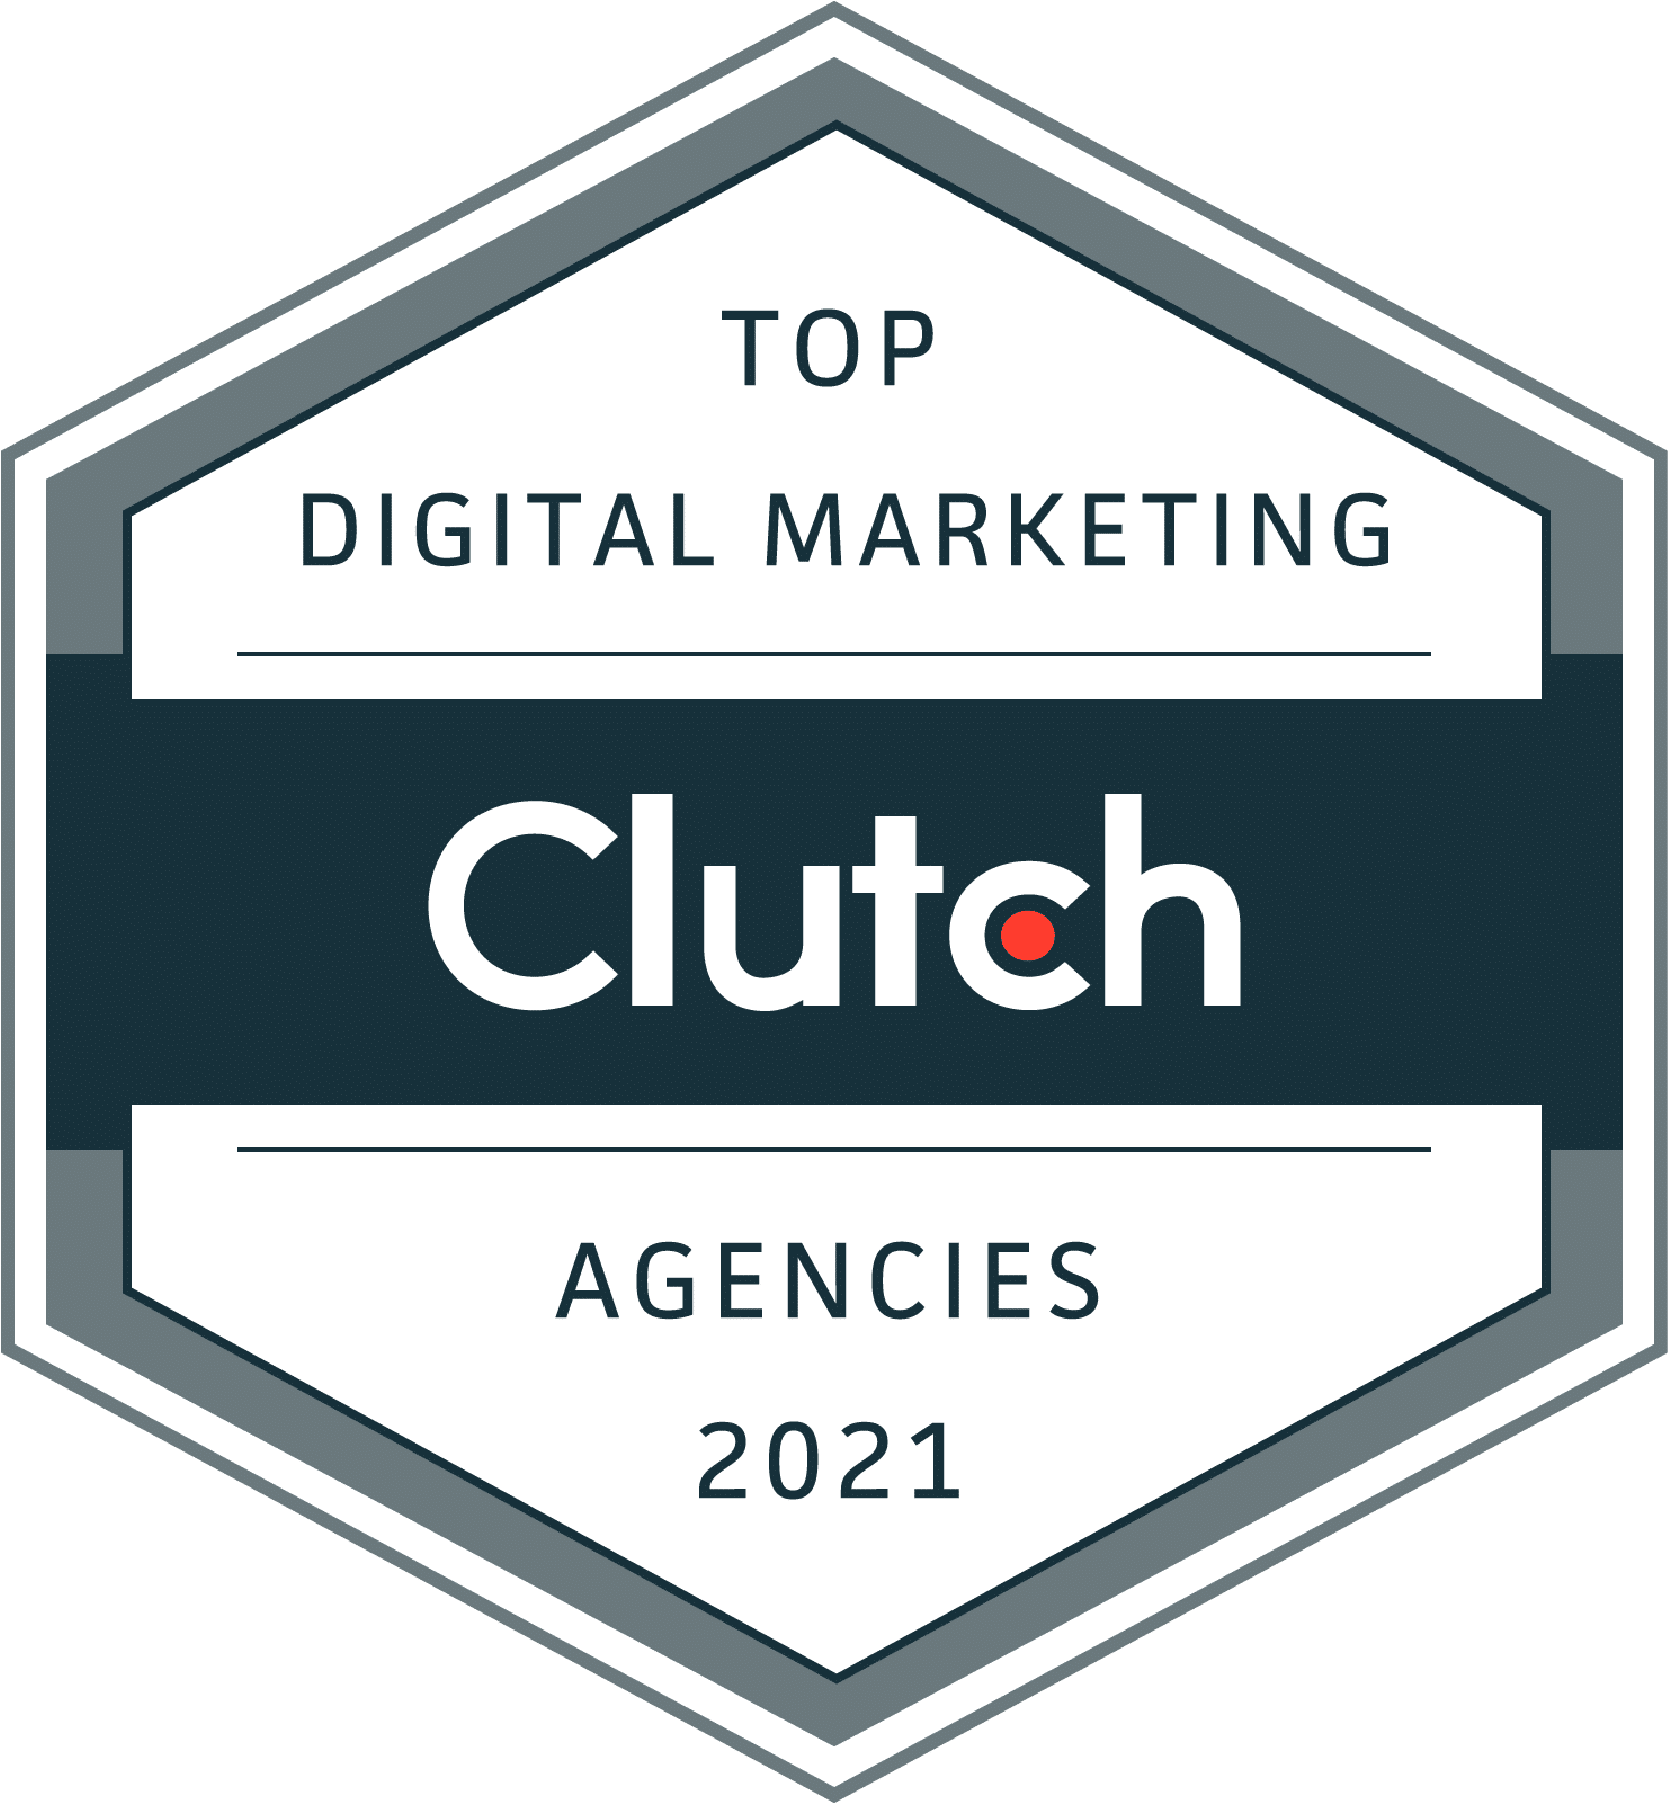 Atomic Digital Marketing Top Digital MArketing Agencies as Recommended by Clutch UK